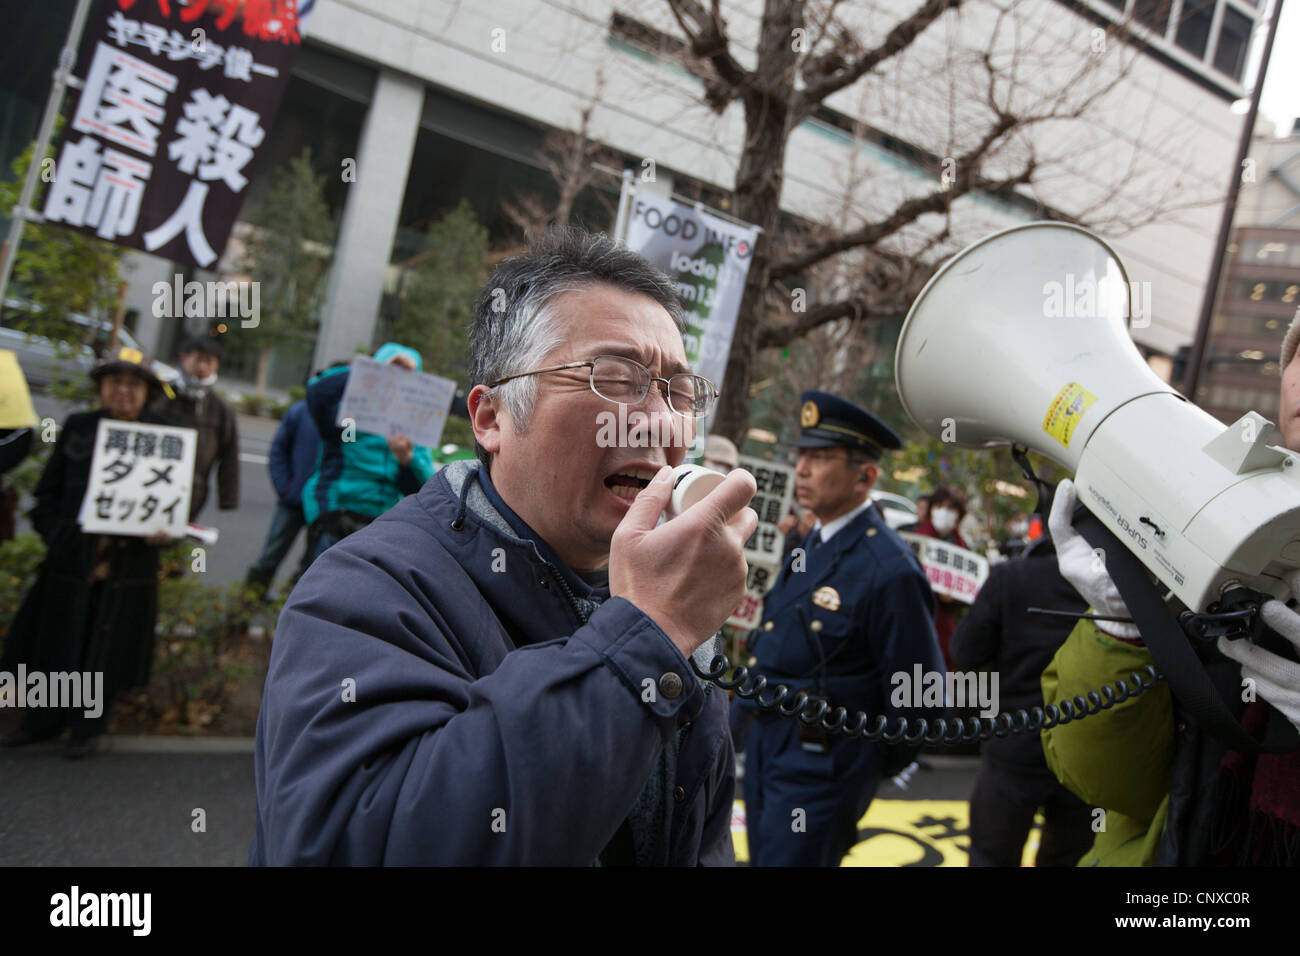 Anti-nuclear protest in Tokyo, Japan, January 2012. - Stock Image